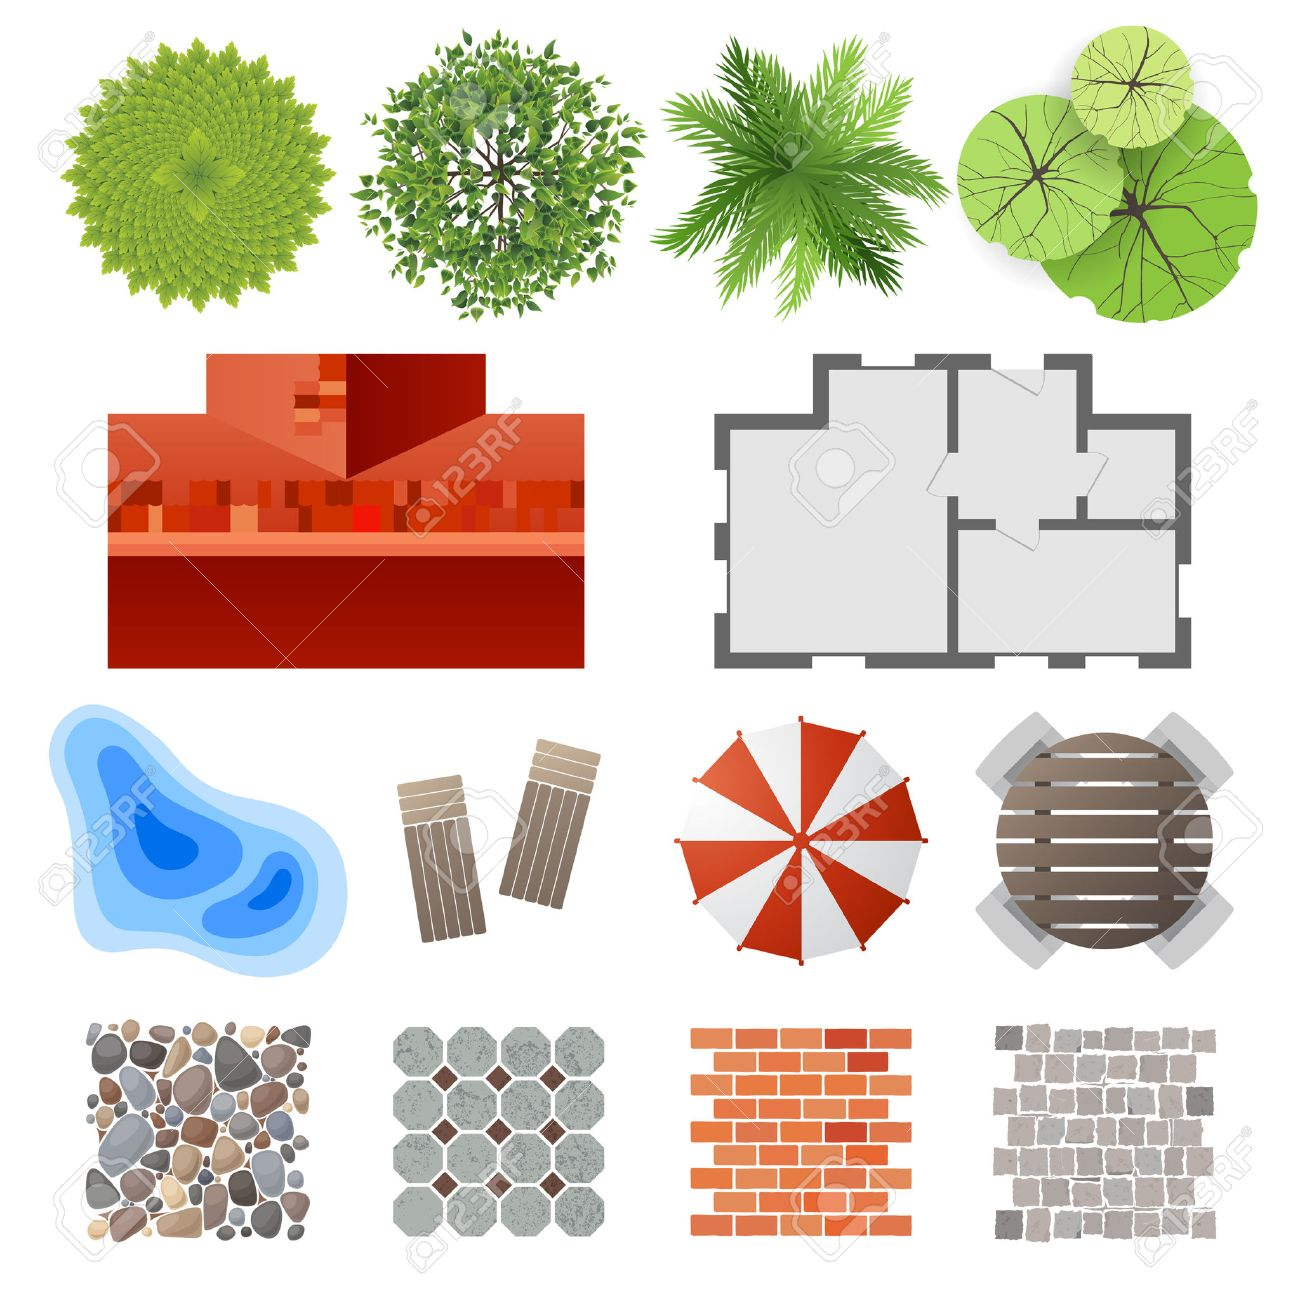 Plant top view vector in group download free vector art stock - Top View Highly Detailed Landscape Design Elements Easy To Make Your Own Plan